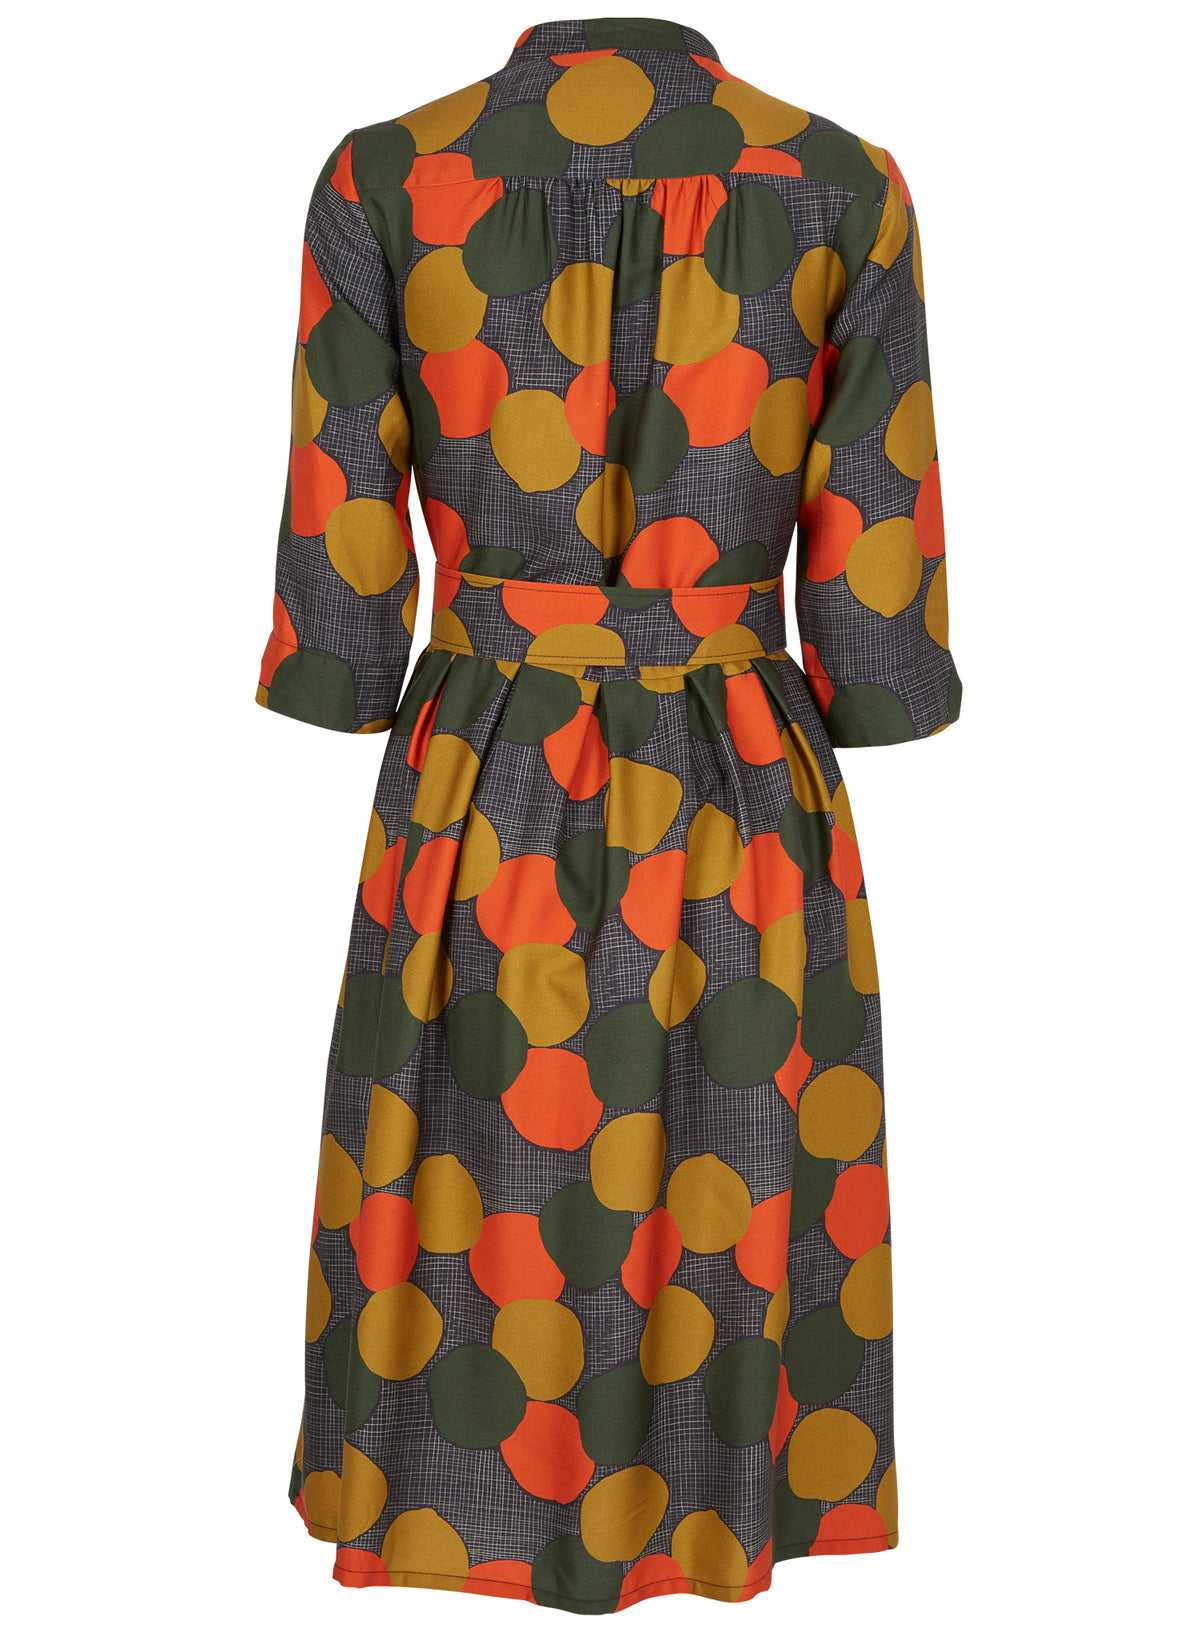 PALAVA - Cynthia Dress (Charcoal Autumn Forest)